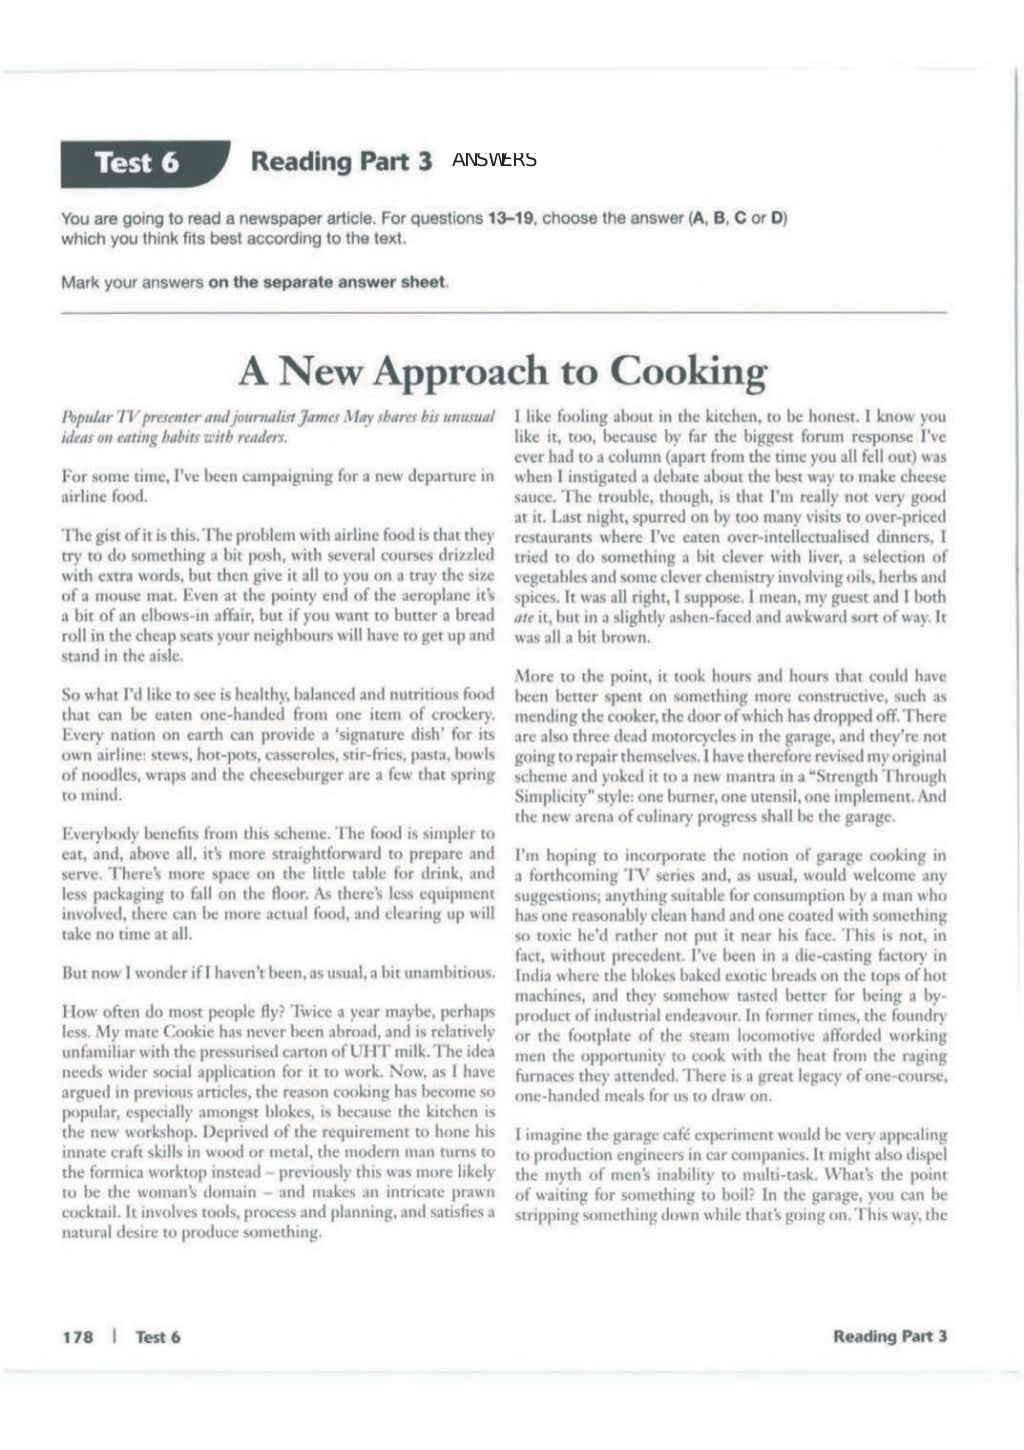 Advanced trainer 6 practice tests with answers book4joy (1) page 179